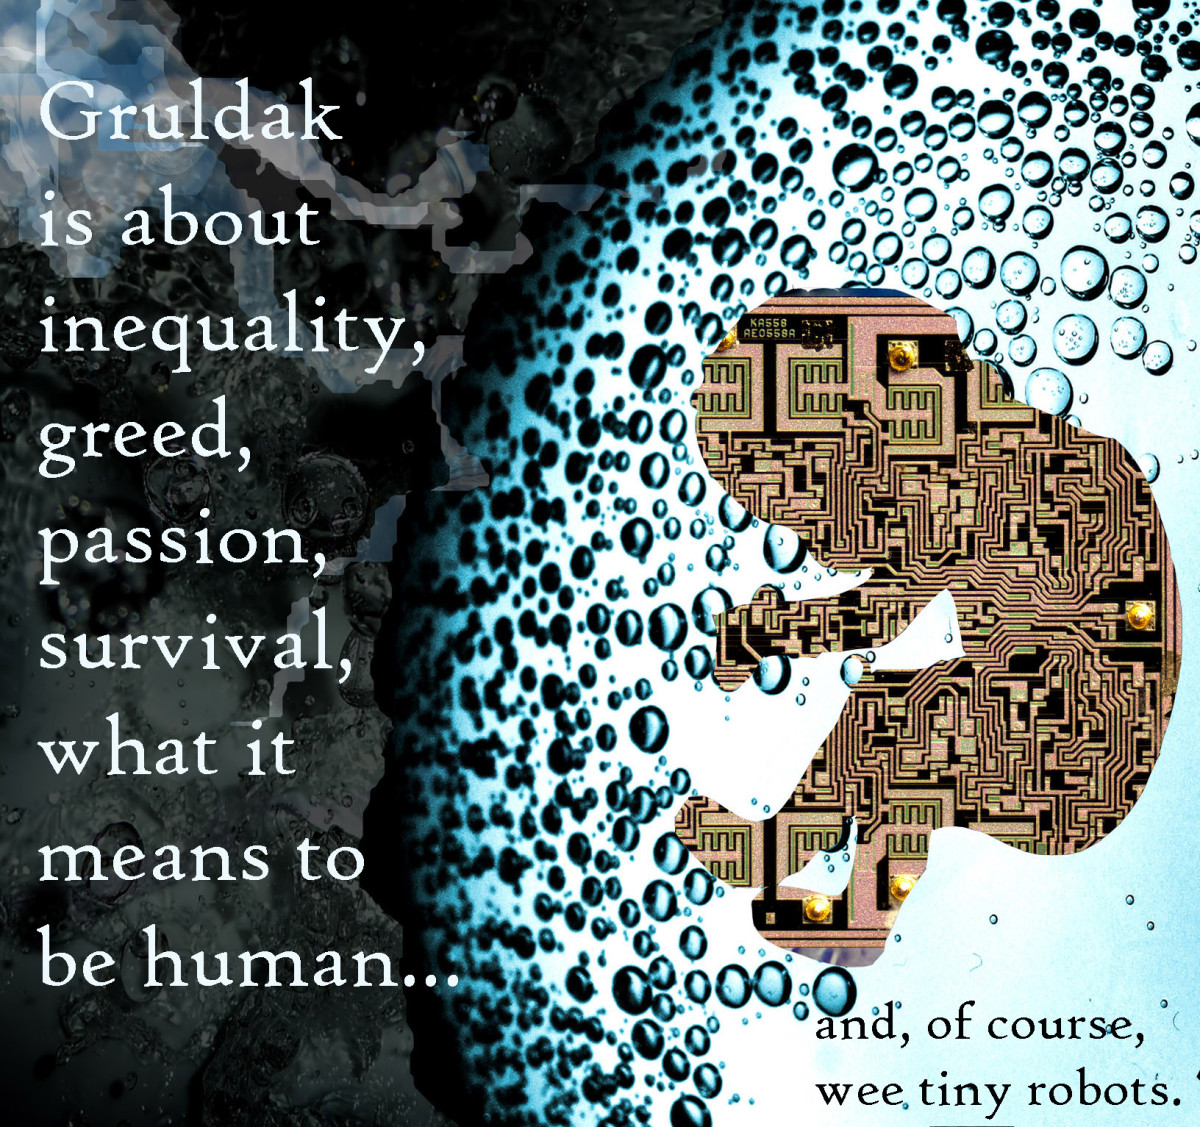 Circuit-board fetus in a water bubble floating in space, an illustration for Gift of the Gruldak, a serialized science fiction novel you can read online for free at HubPages.